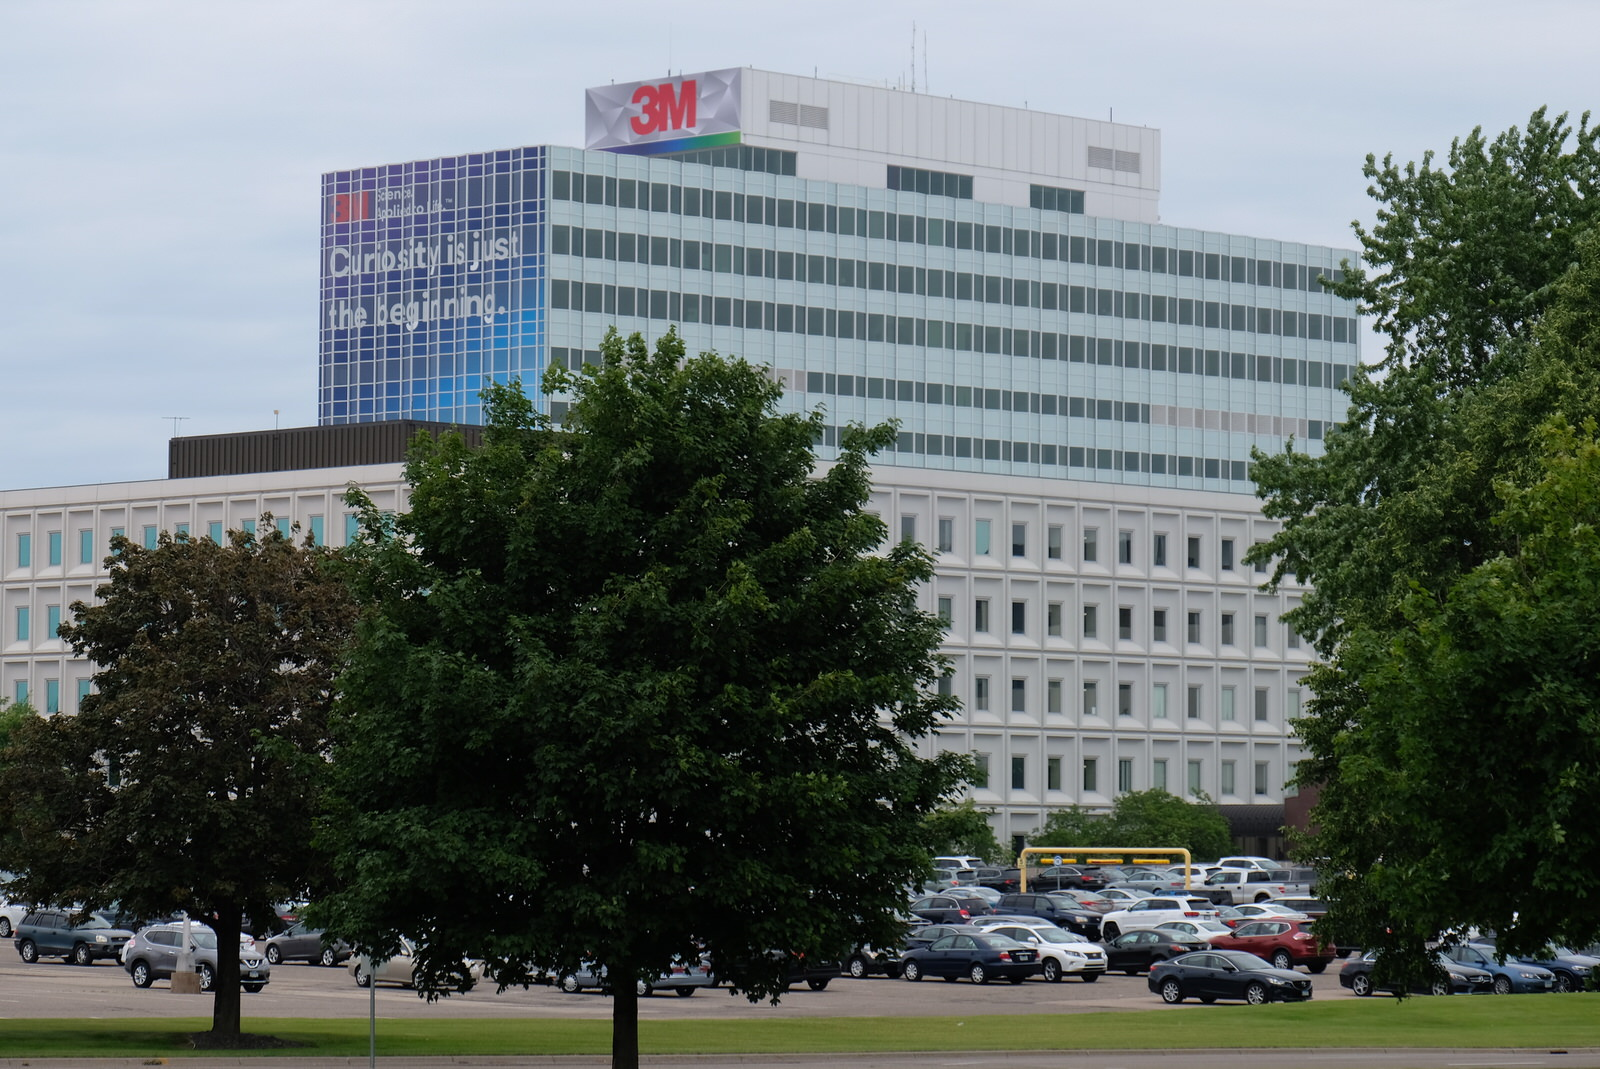 3M's corporate campus in St. Paul, Minnesota.